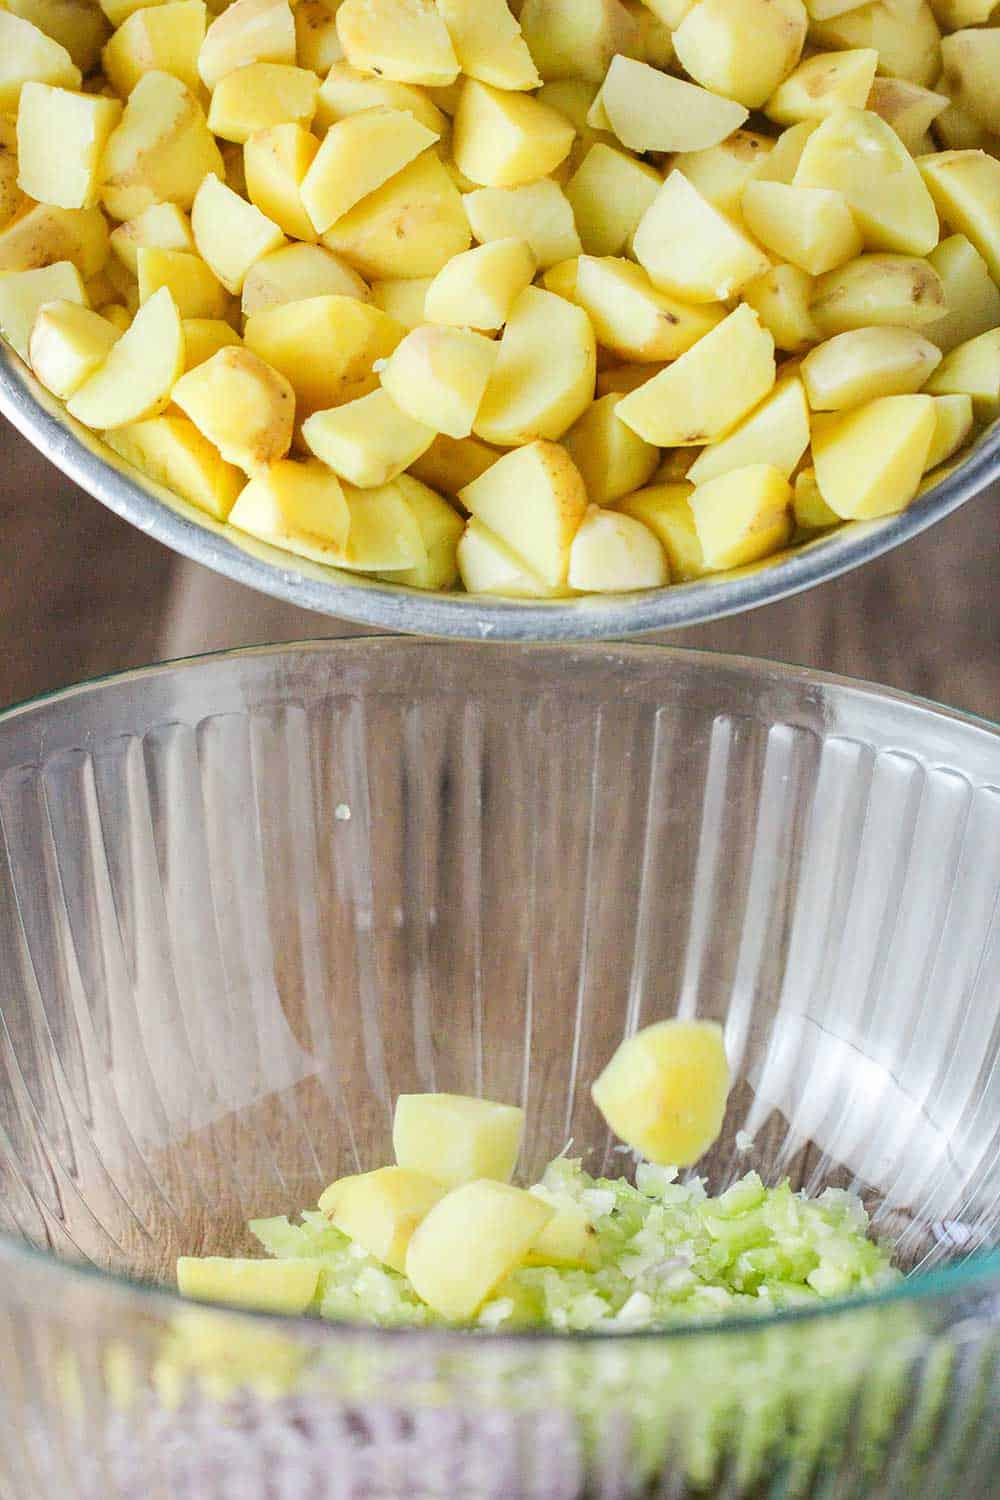 Cooked diced potatoes dropping into a glass bowl with chopped celery. and onion.